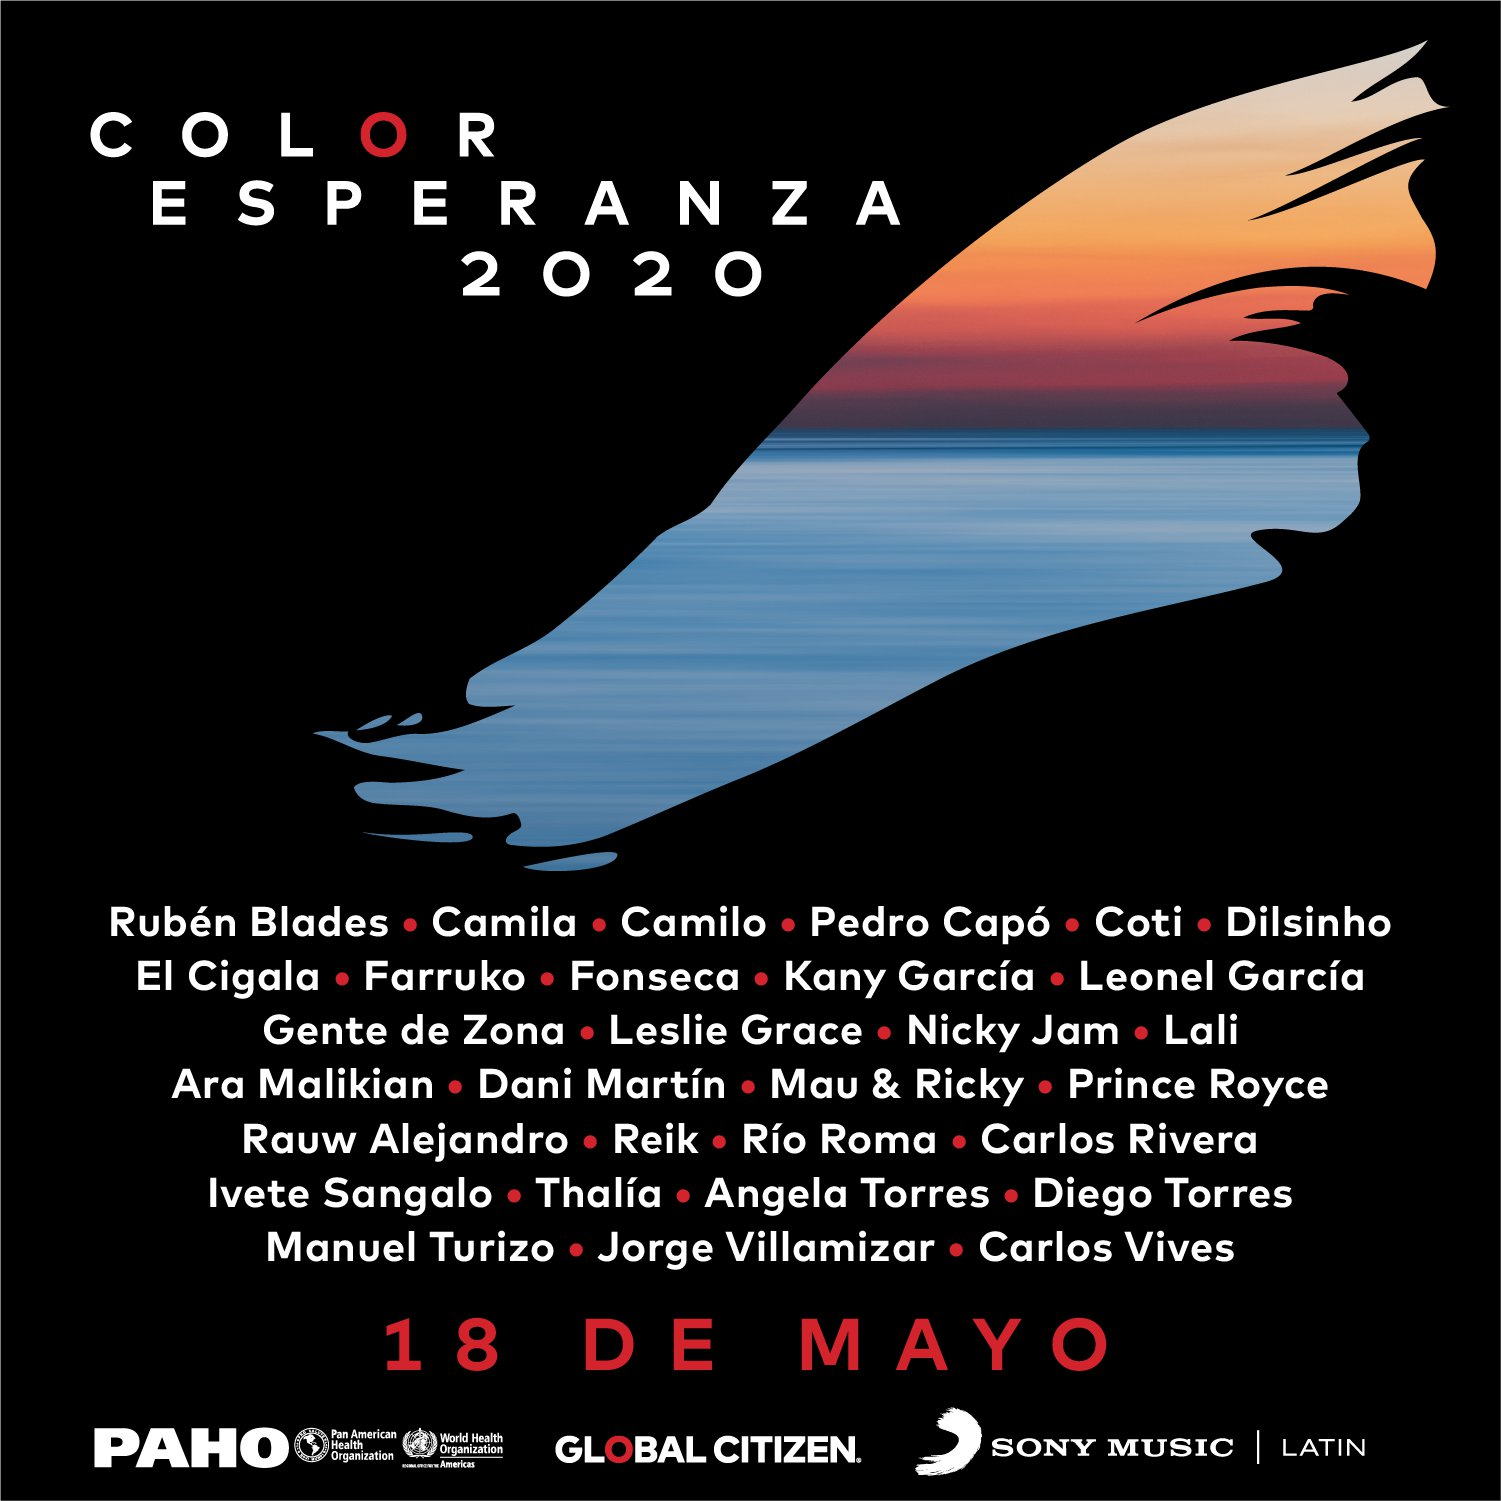 Color Esperanza Artists Spanish.png